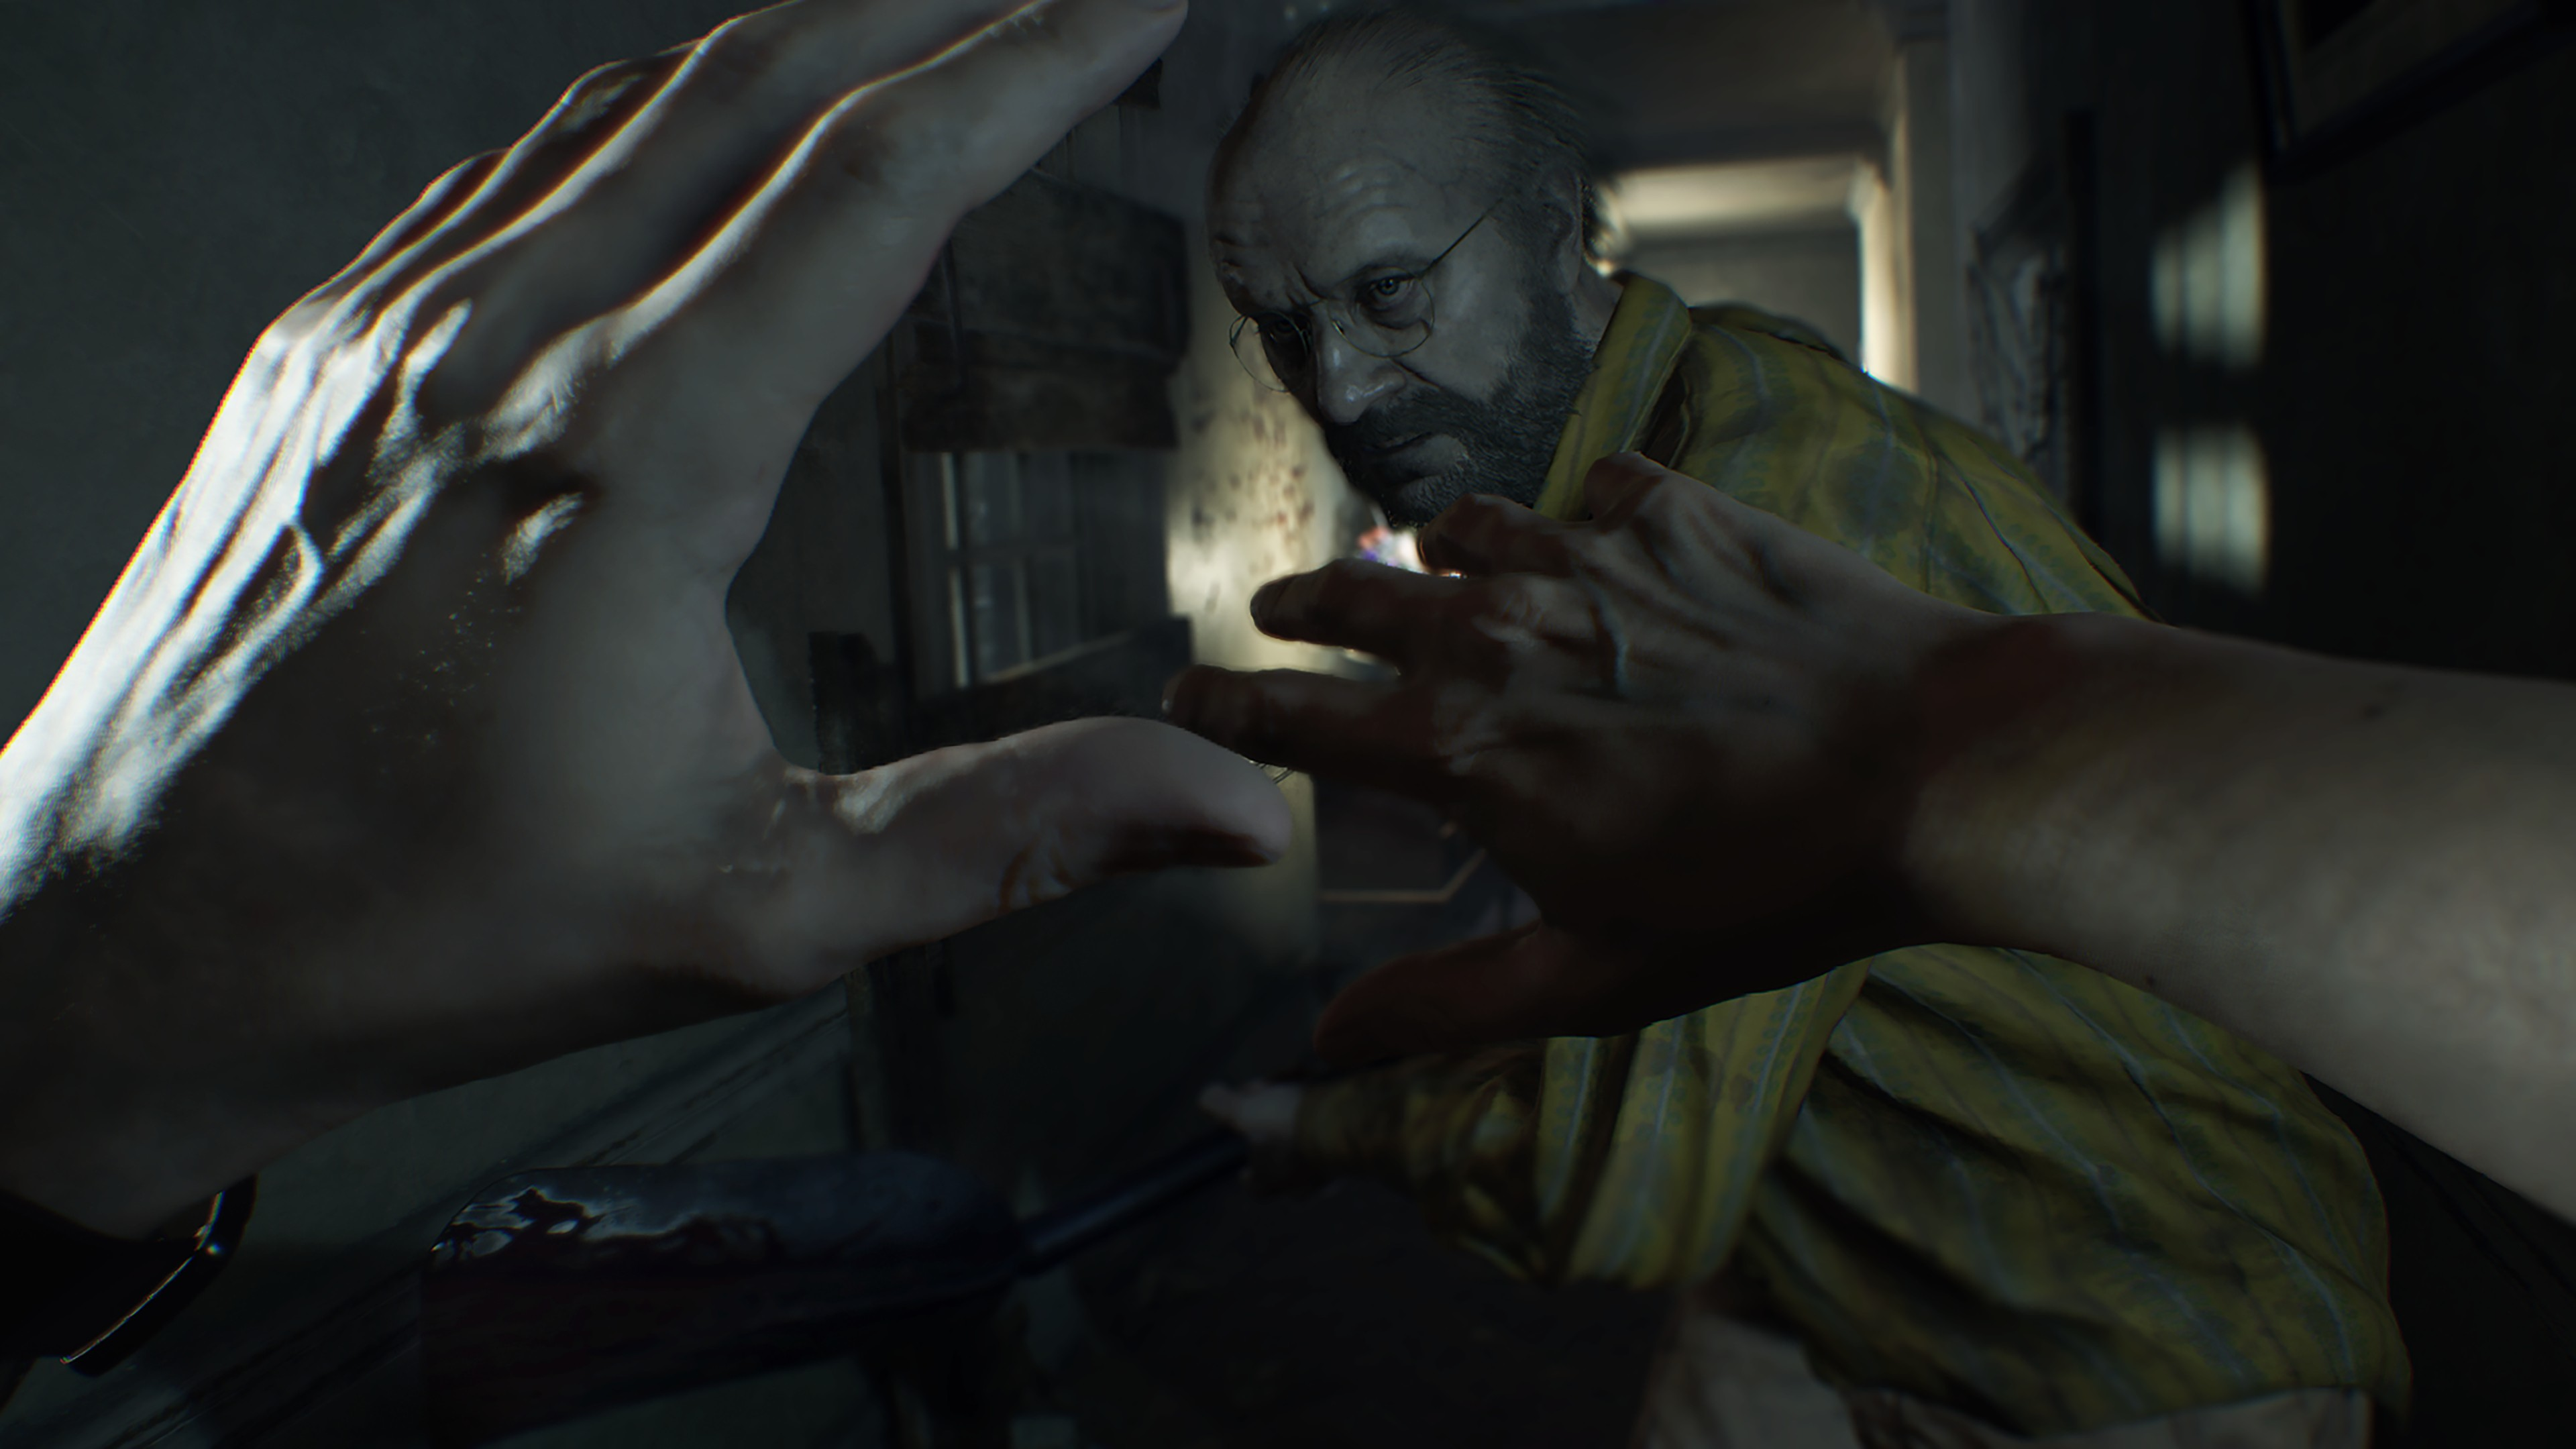 Best horror games of 2017 Resident Evil 7